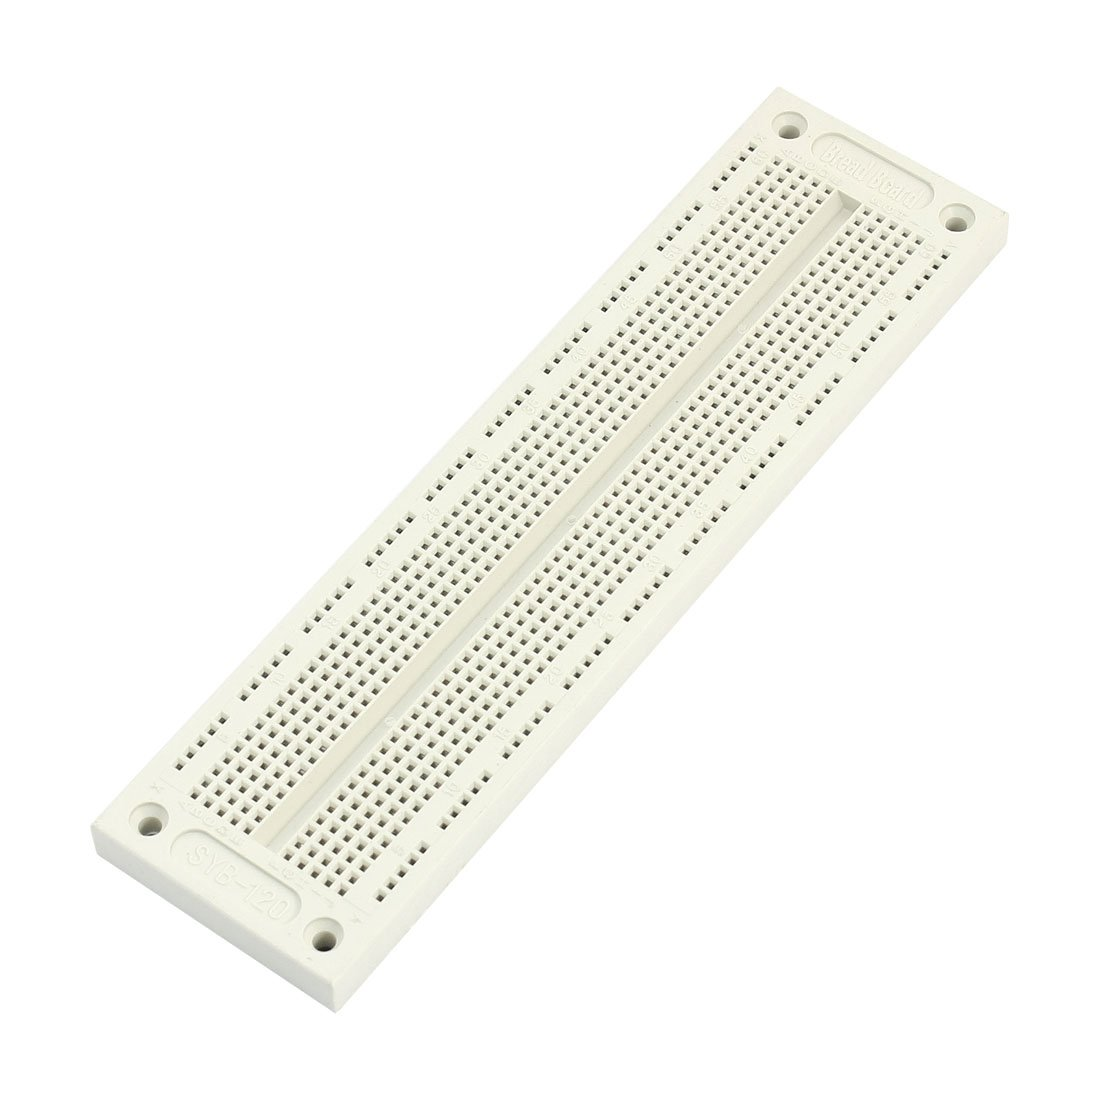 sourcingmap® White 700 Tiepoint Test Develop DIY PCB Solderless Bread Board SYB-120 a14060500ux0518